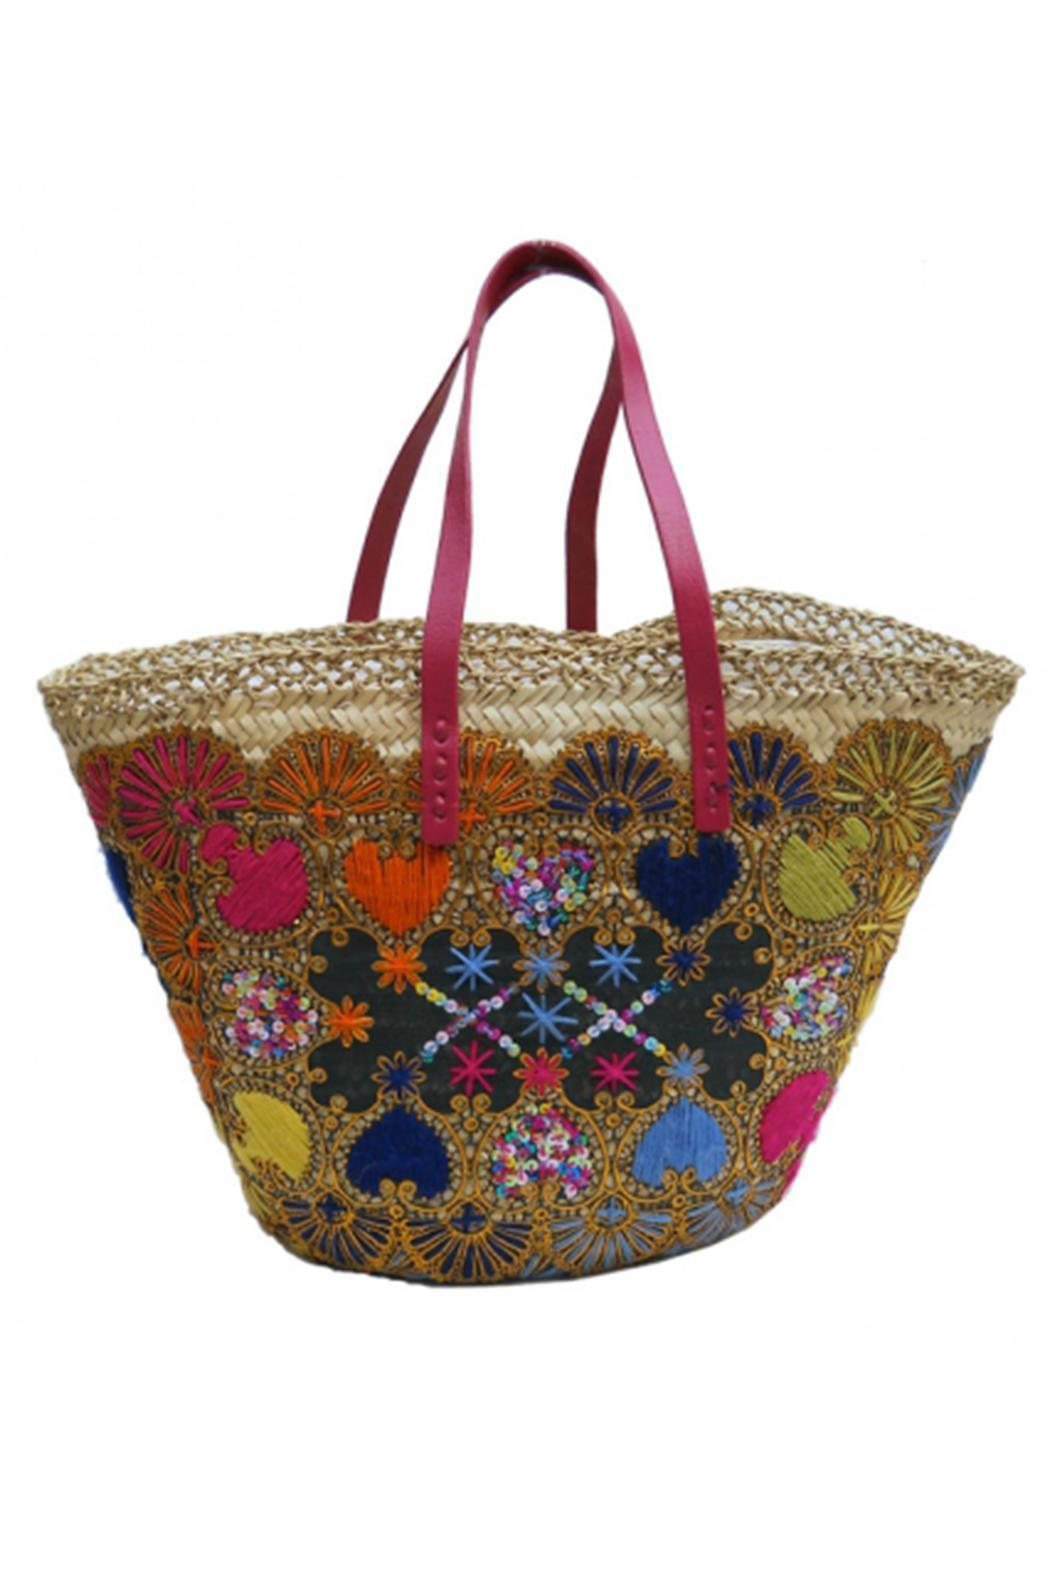 embroidery designs for bags